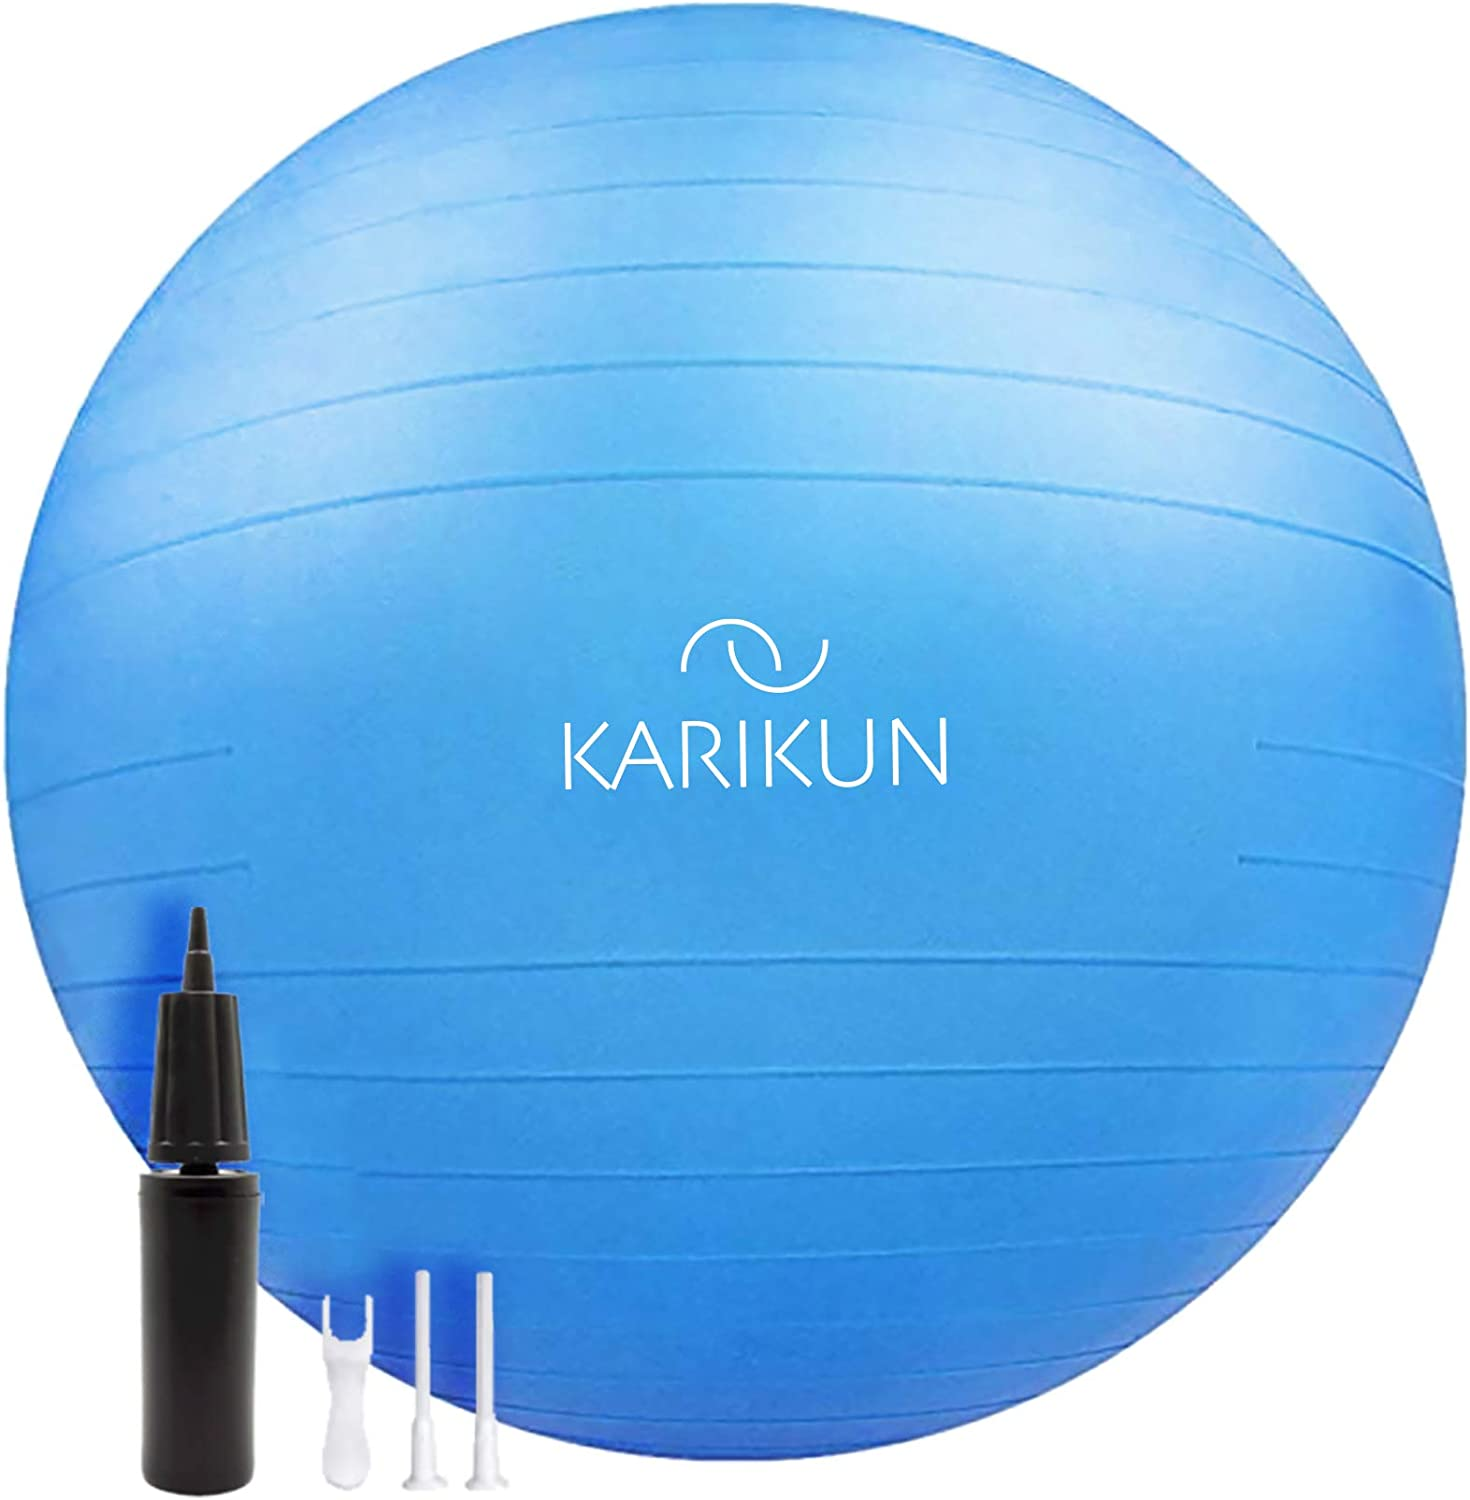 KARIKUN Exercise Ball, 65cm Yoga Ball, Medicine Ball Chair for Fitness - Stability Balance Pilates Core & Workout with Quick Pump - Upgraded Anti Burst Slip Resistance - Home Gym Office Chair